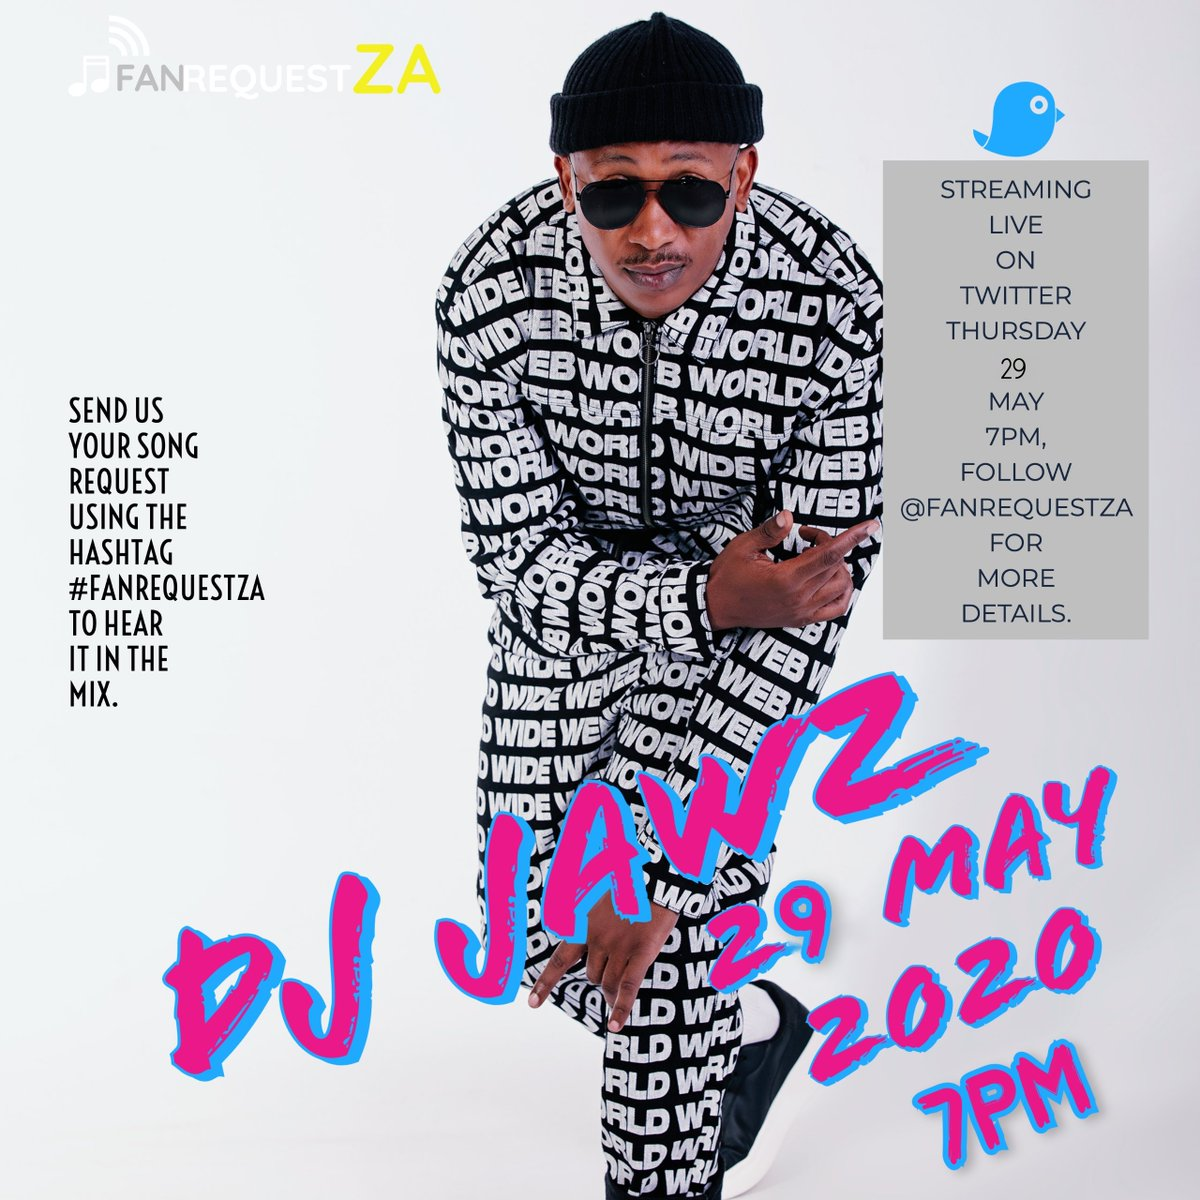 Tonight log into @FanRequestZA & catch @DJJawz LIVE stream at 7pm.  Send you requests to be featured on his set using the hashtag #FANREQUESTZA https://t.co/VeIwYli4Jf